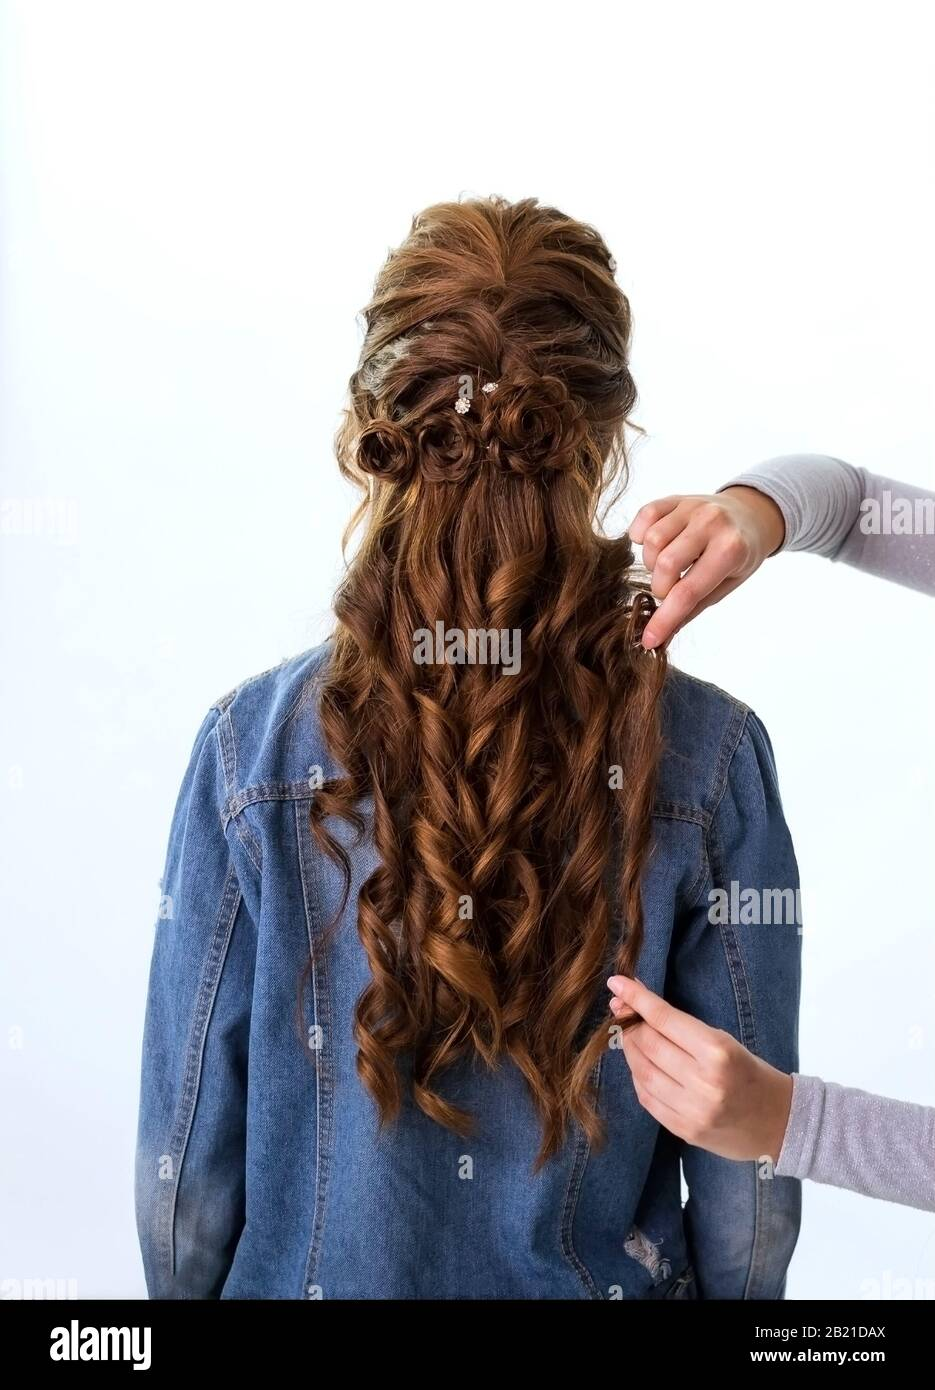 Wave curls hairstyle. Hairdresser making hairstyle to red brown hair woman with long hair using comb on white background. Professional hairdressing Stock Photo